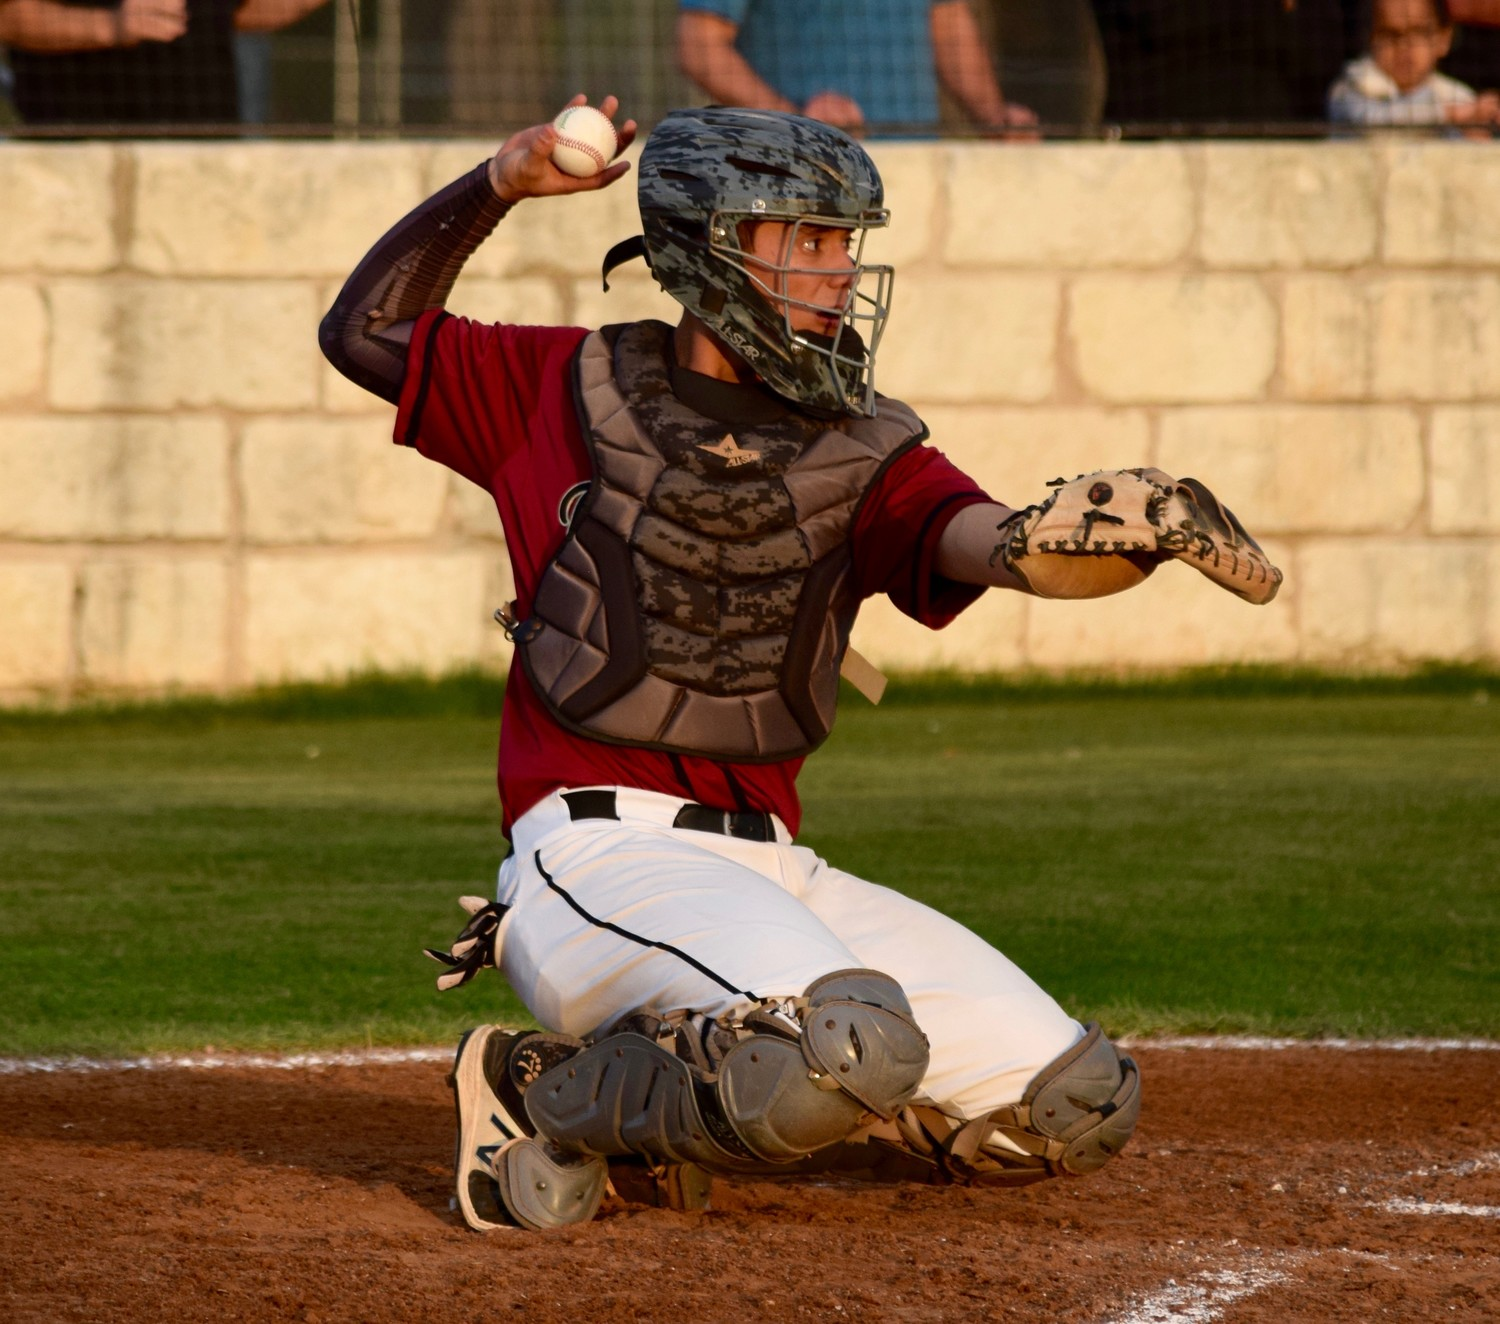 Cody Vannoy played his first season with Rouse last season and took home MVP honors as the Raiders won the District 19-5A title.